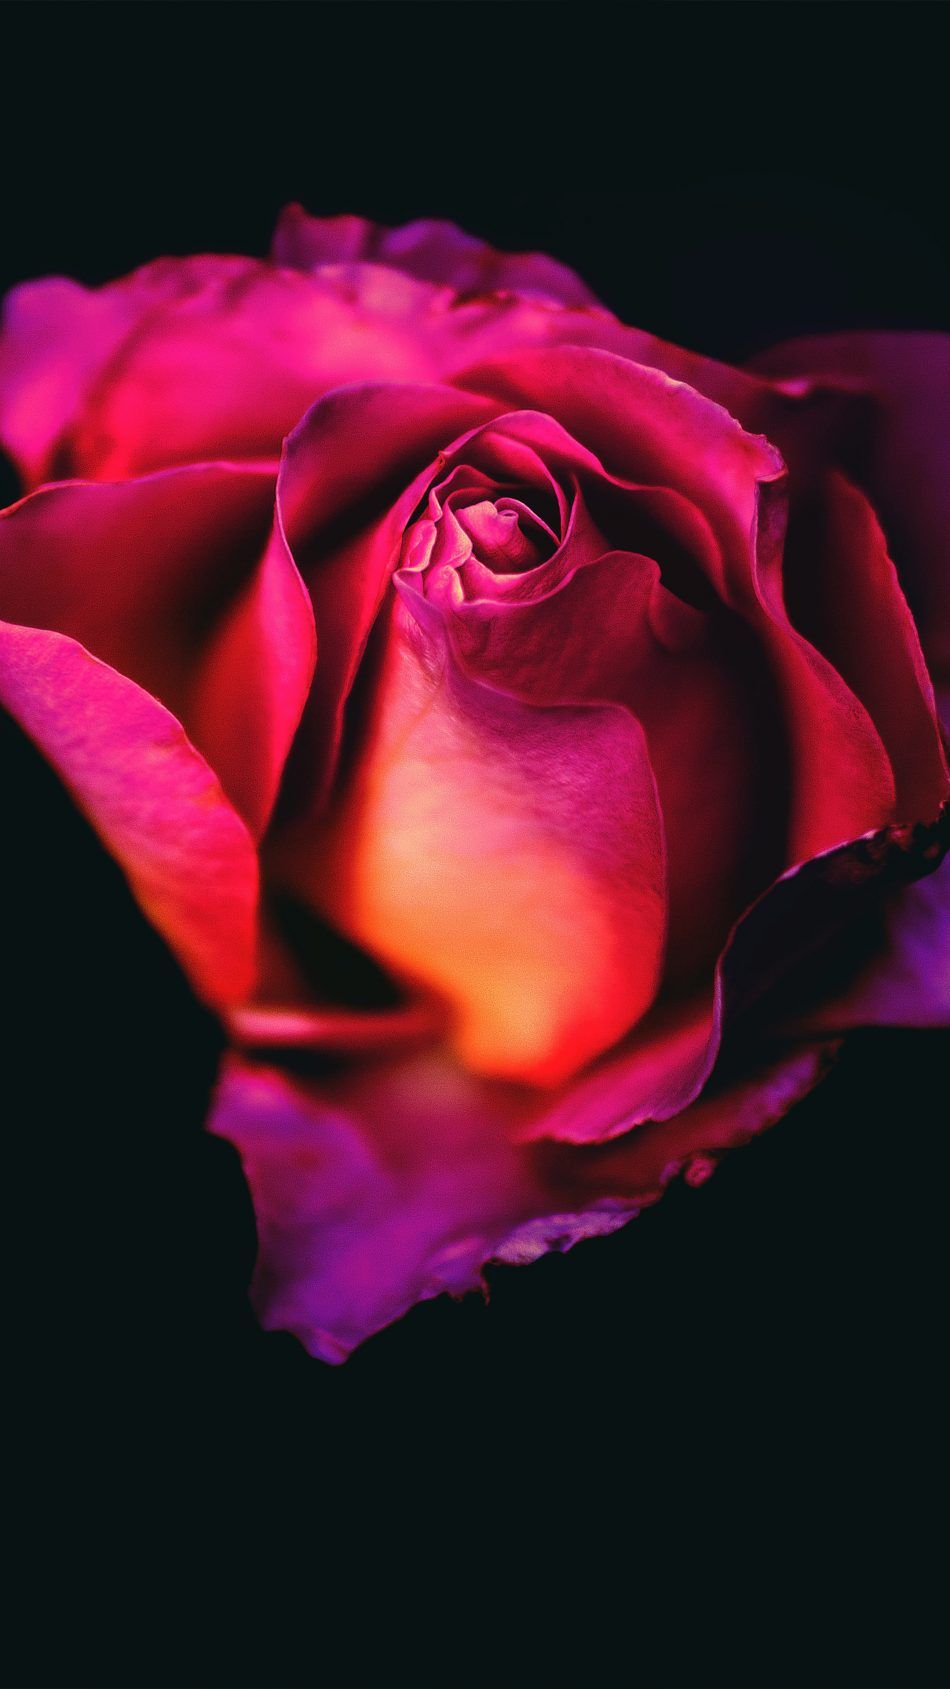 Rose Flower Dark Background 4k Ultra Hd Mobile Wallpaper Rose Wallpaper Wallpaper Iphone Roses Rose Flower Wallpaper